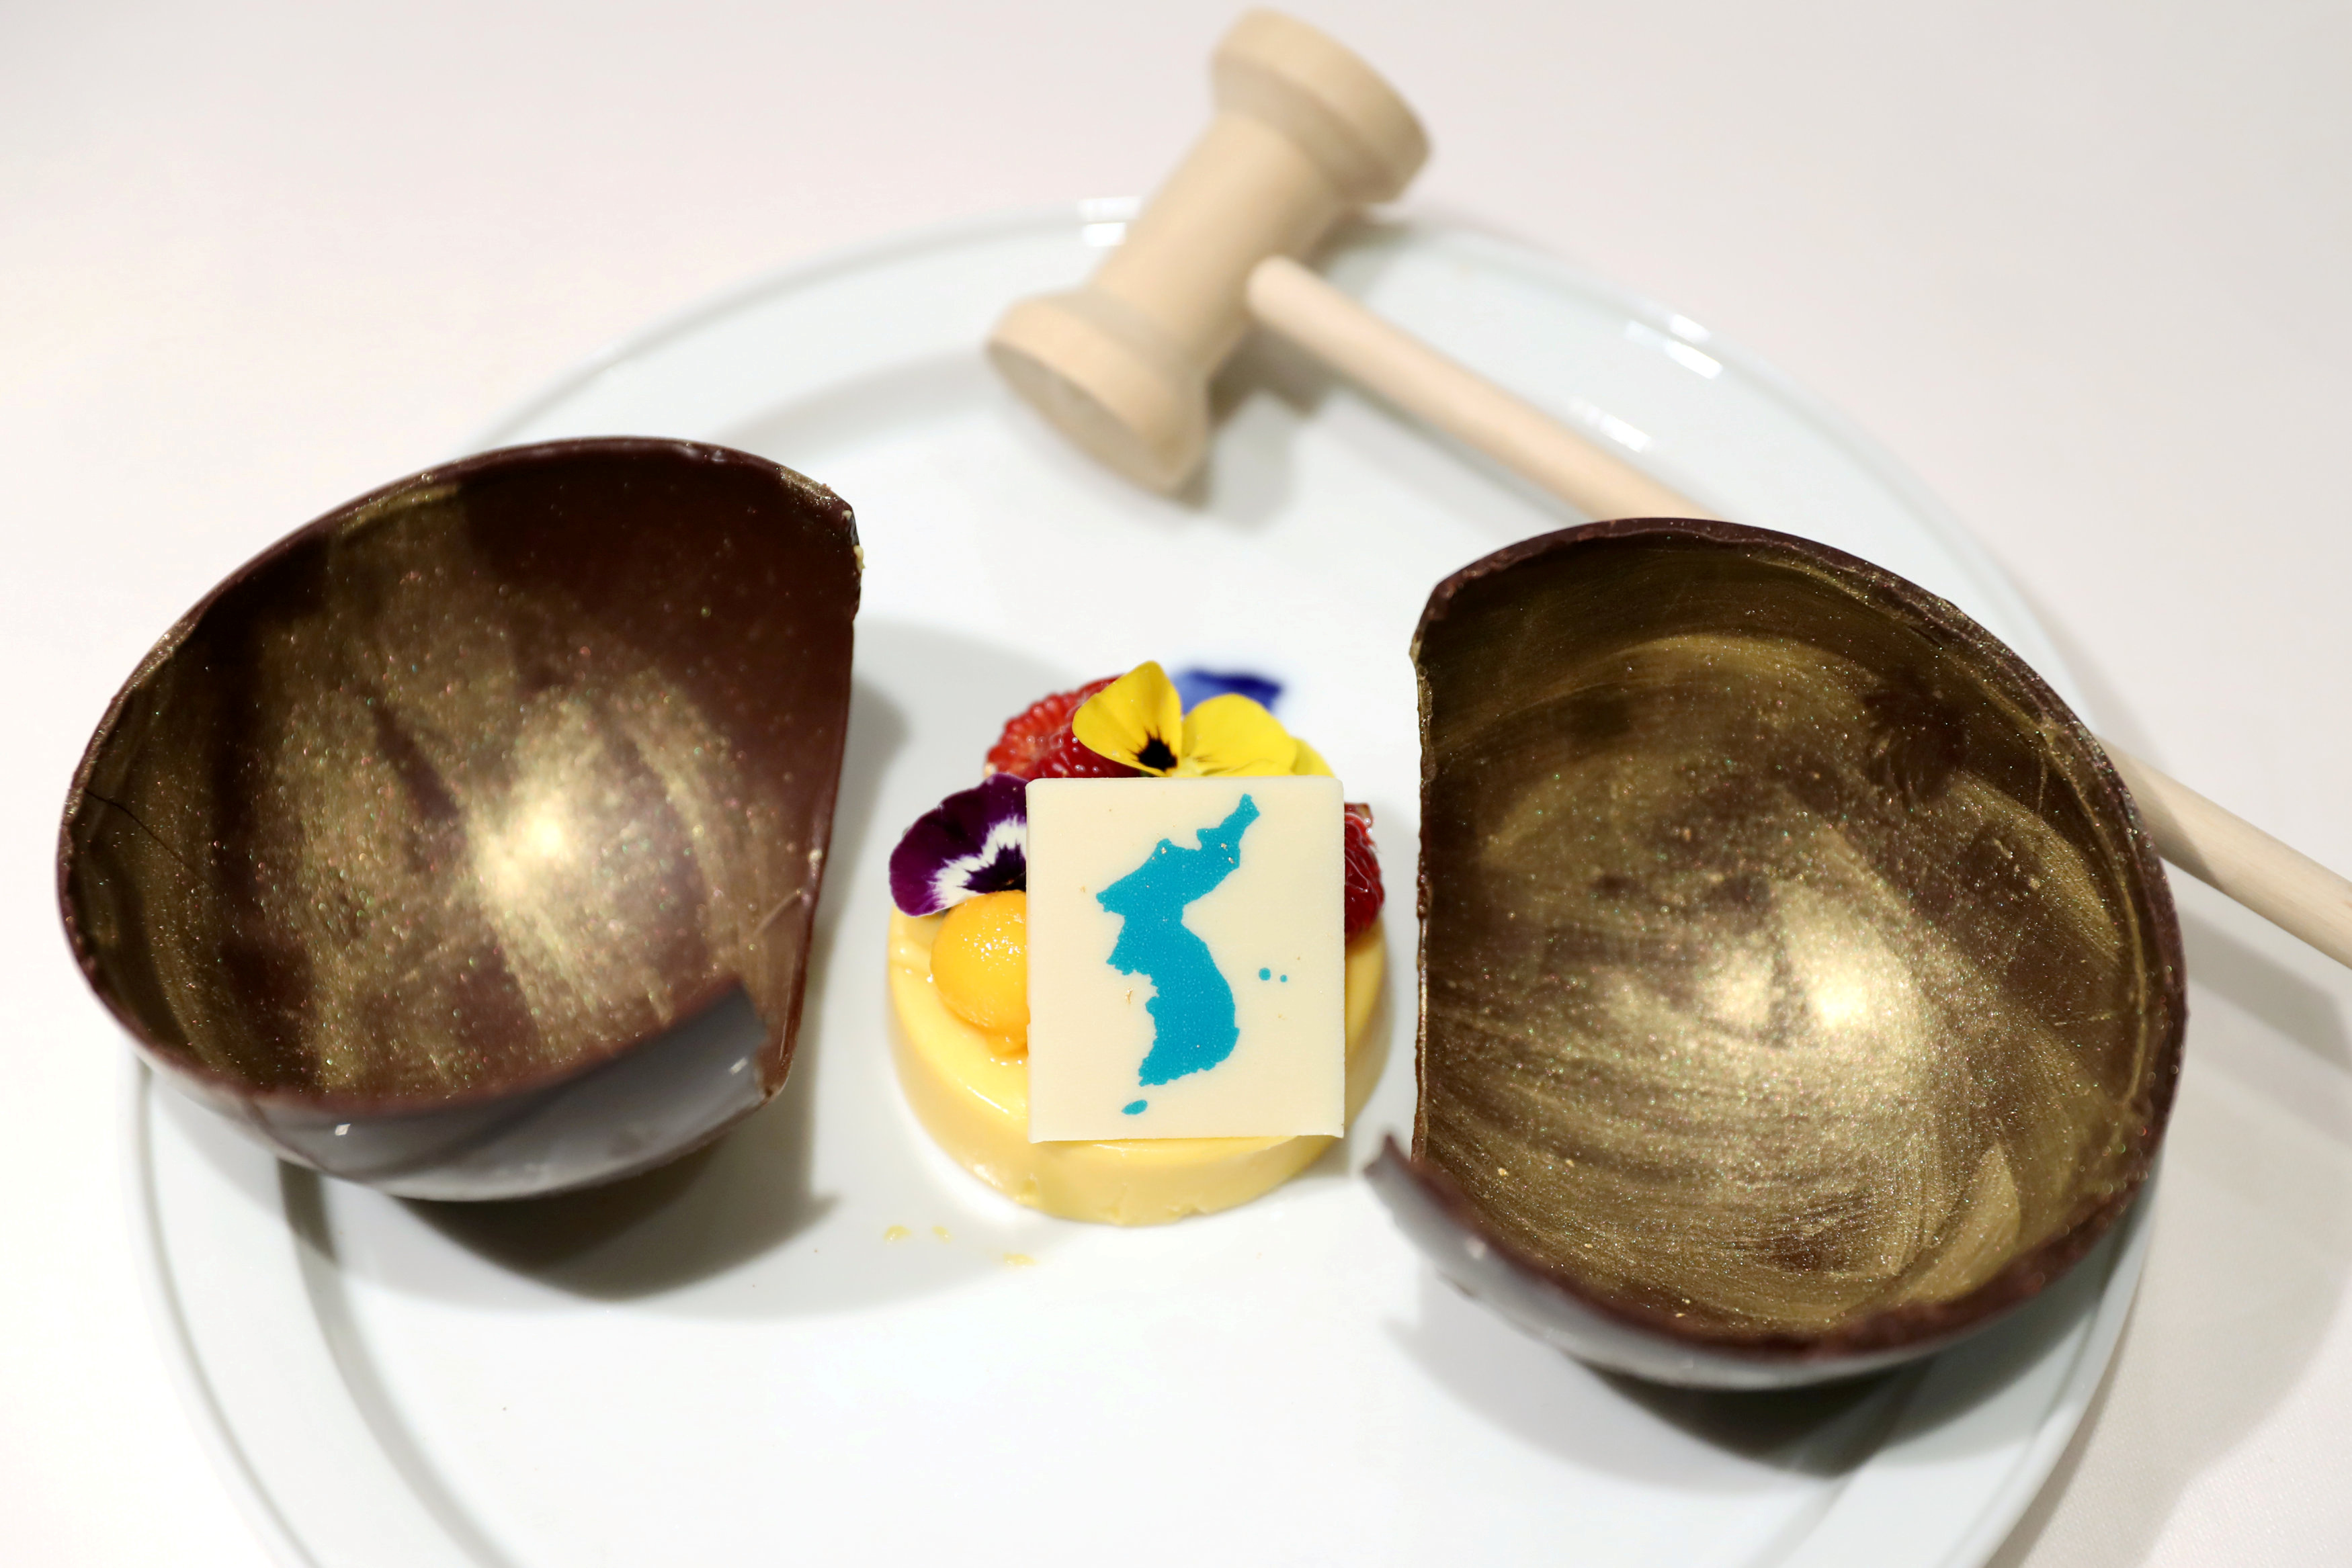 dessert inter-Korea summit